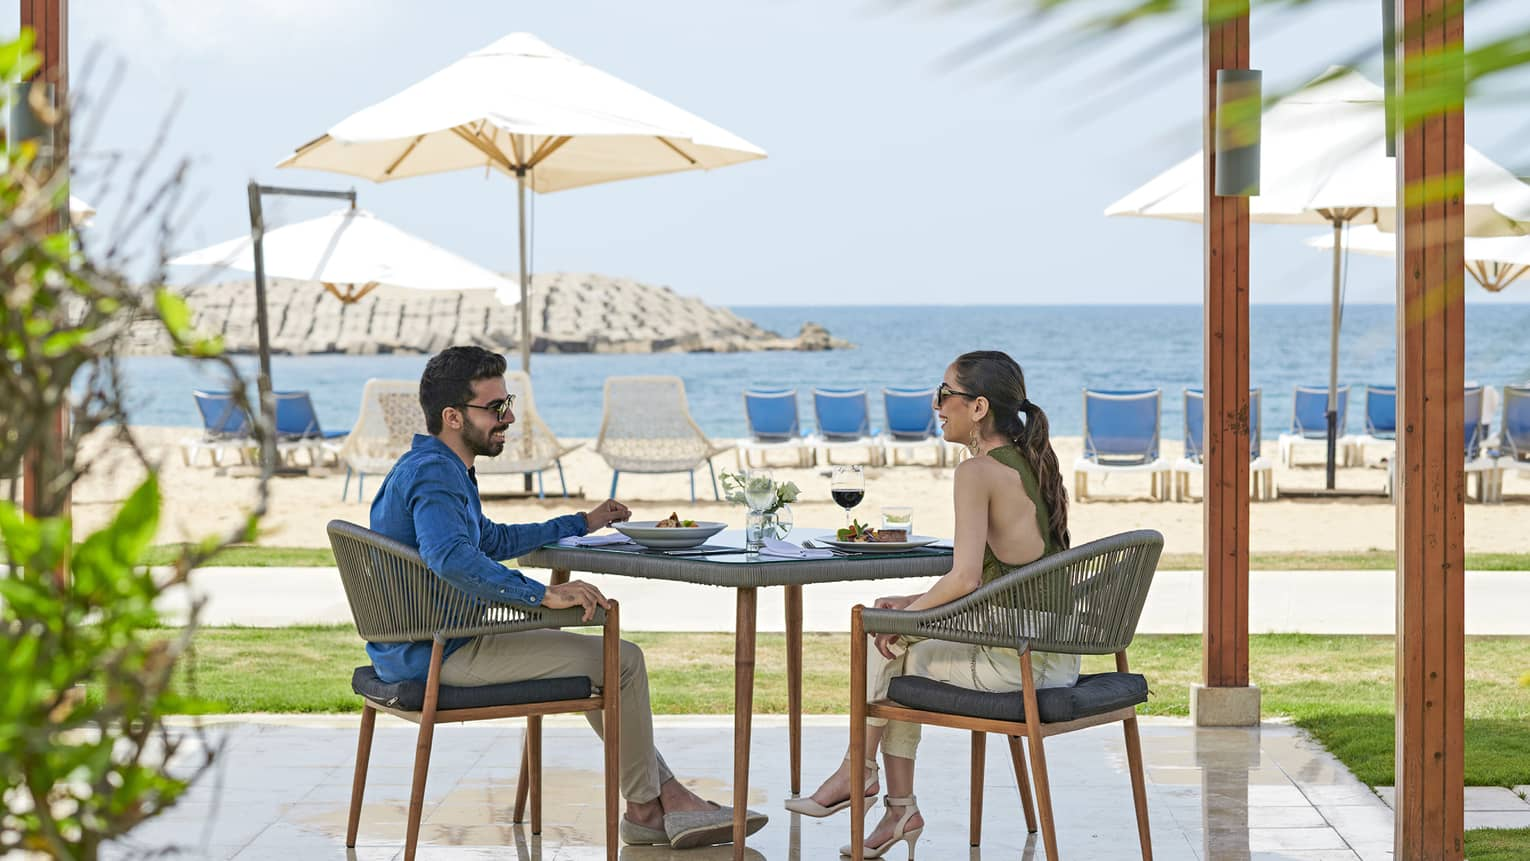 Smiling couple dines at patio table on private pergola near white sand beach